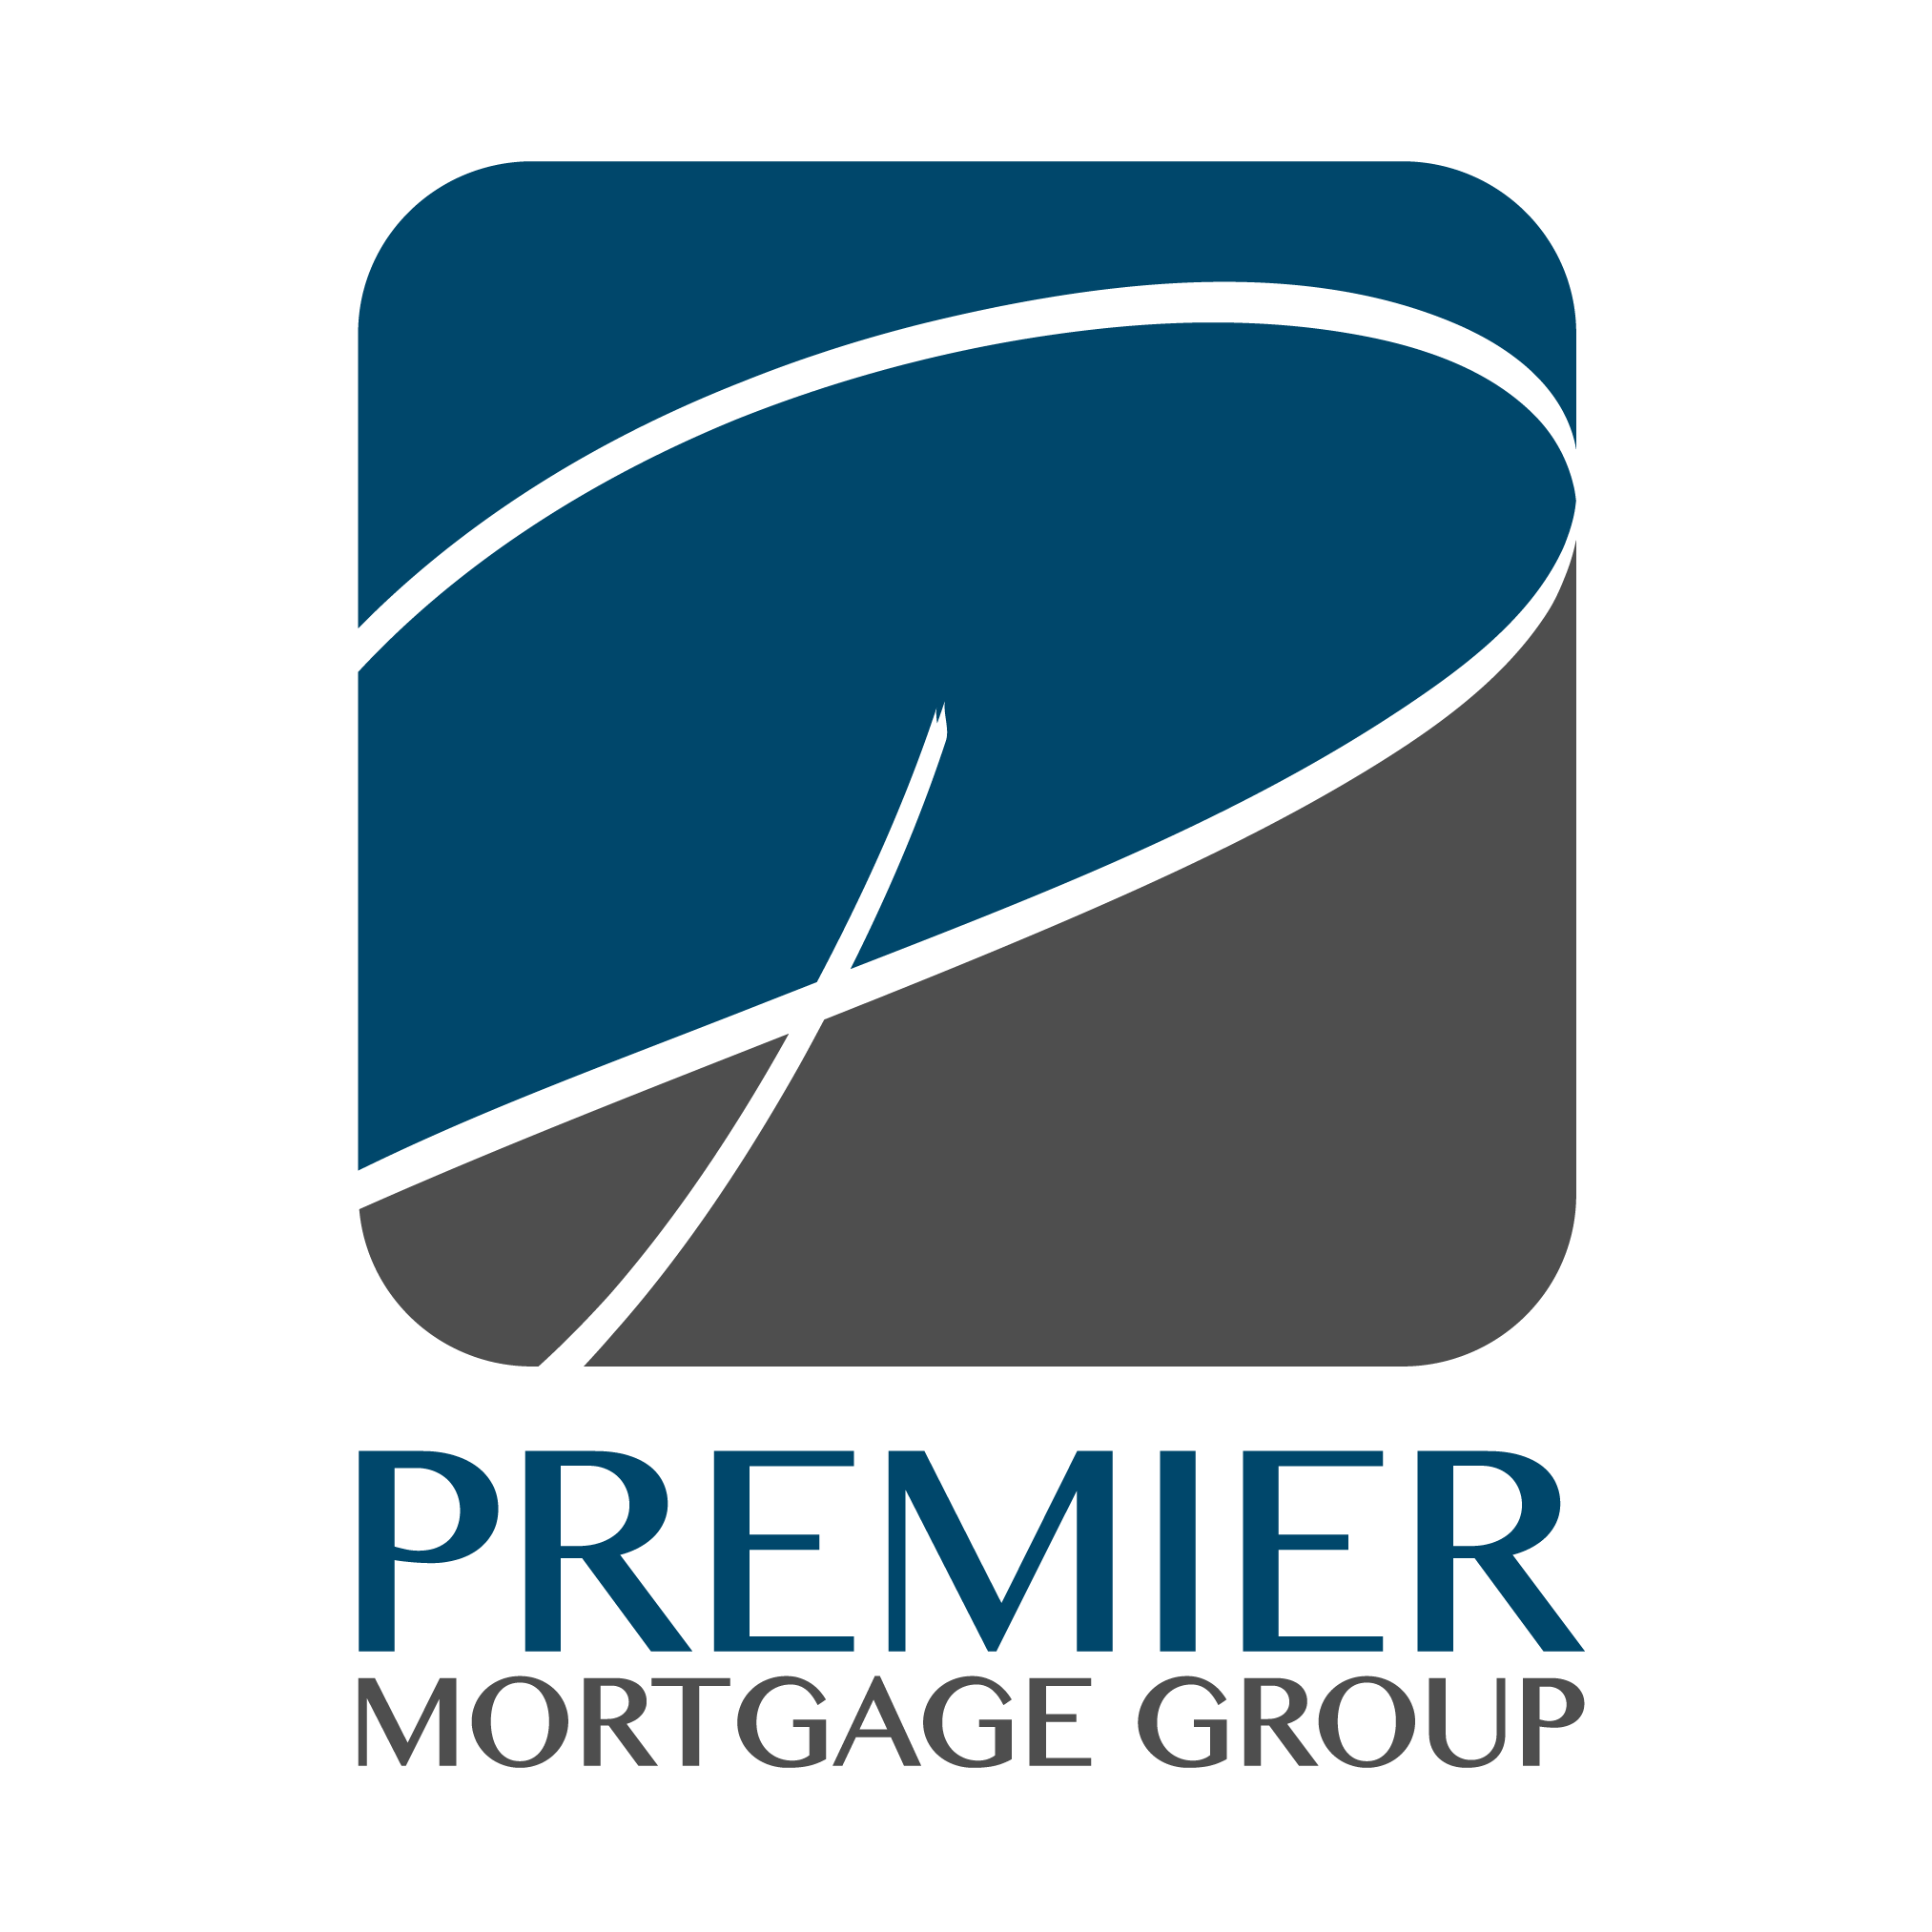 Premier Mortgage Group, Stacy Fridal, NMLS #289577